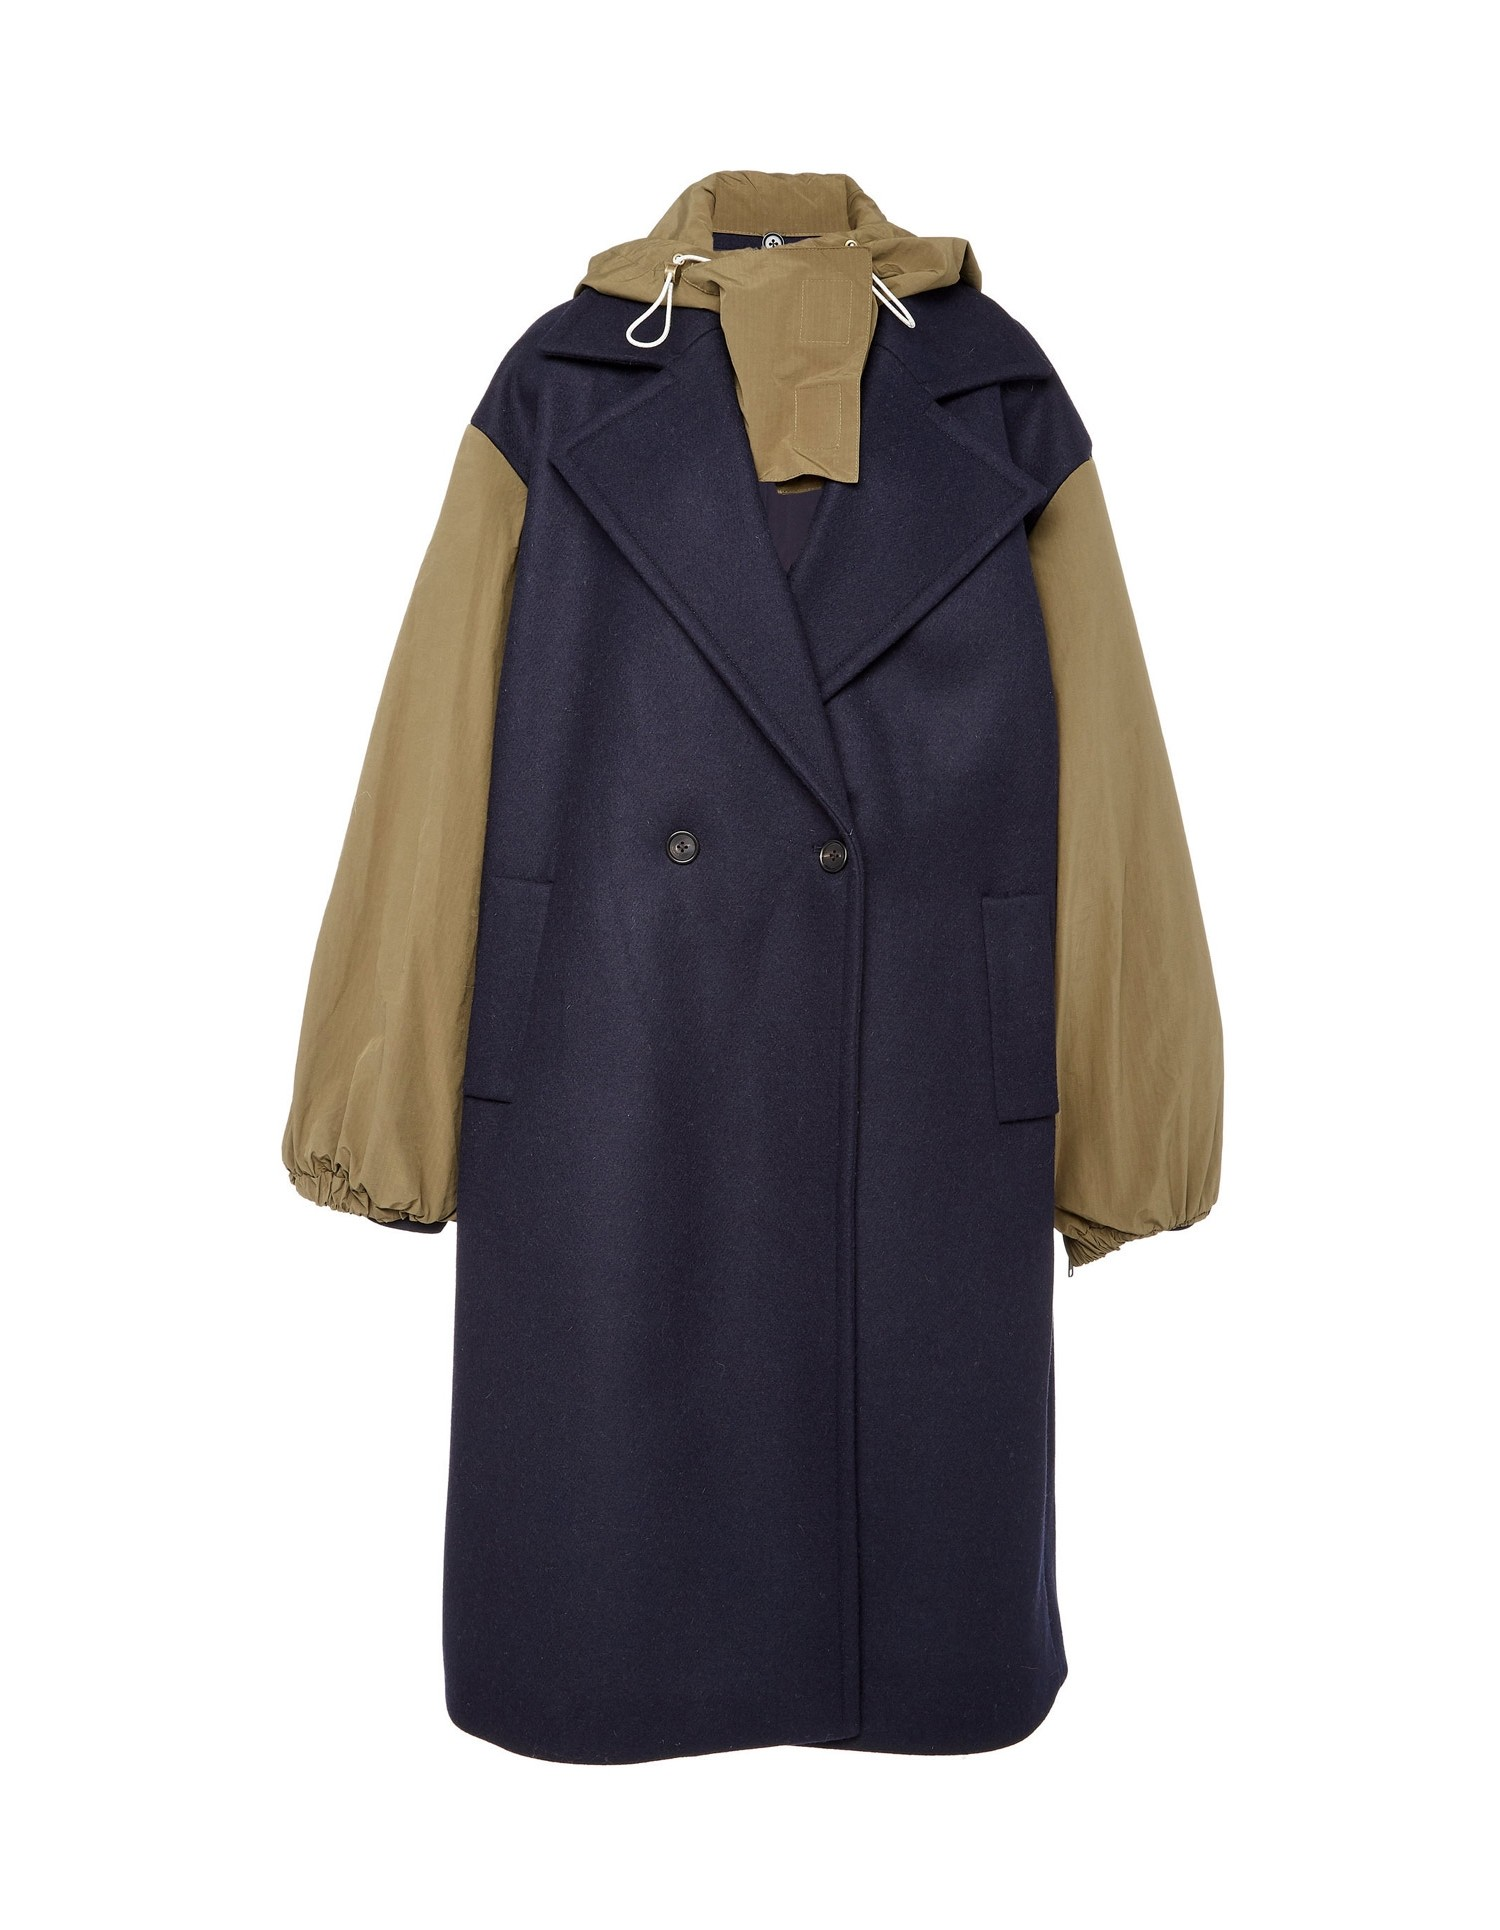 MONSE Wool & Nylon Double Coat Flat Front